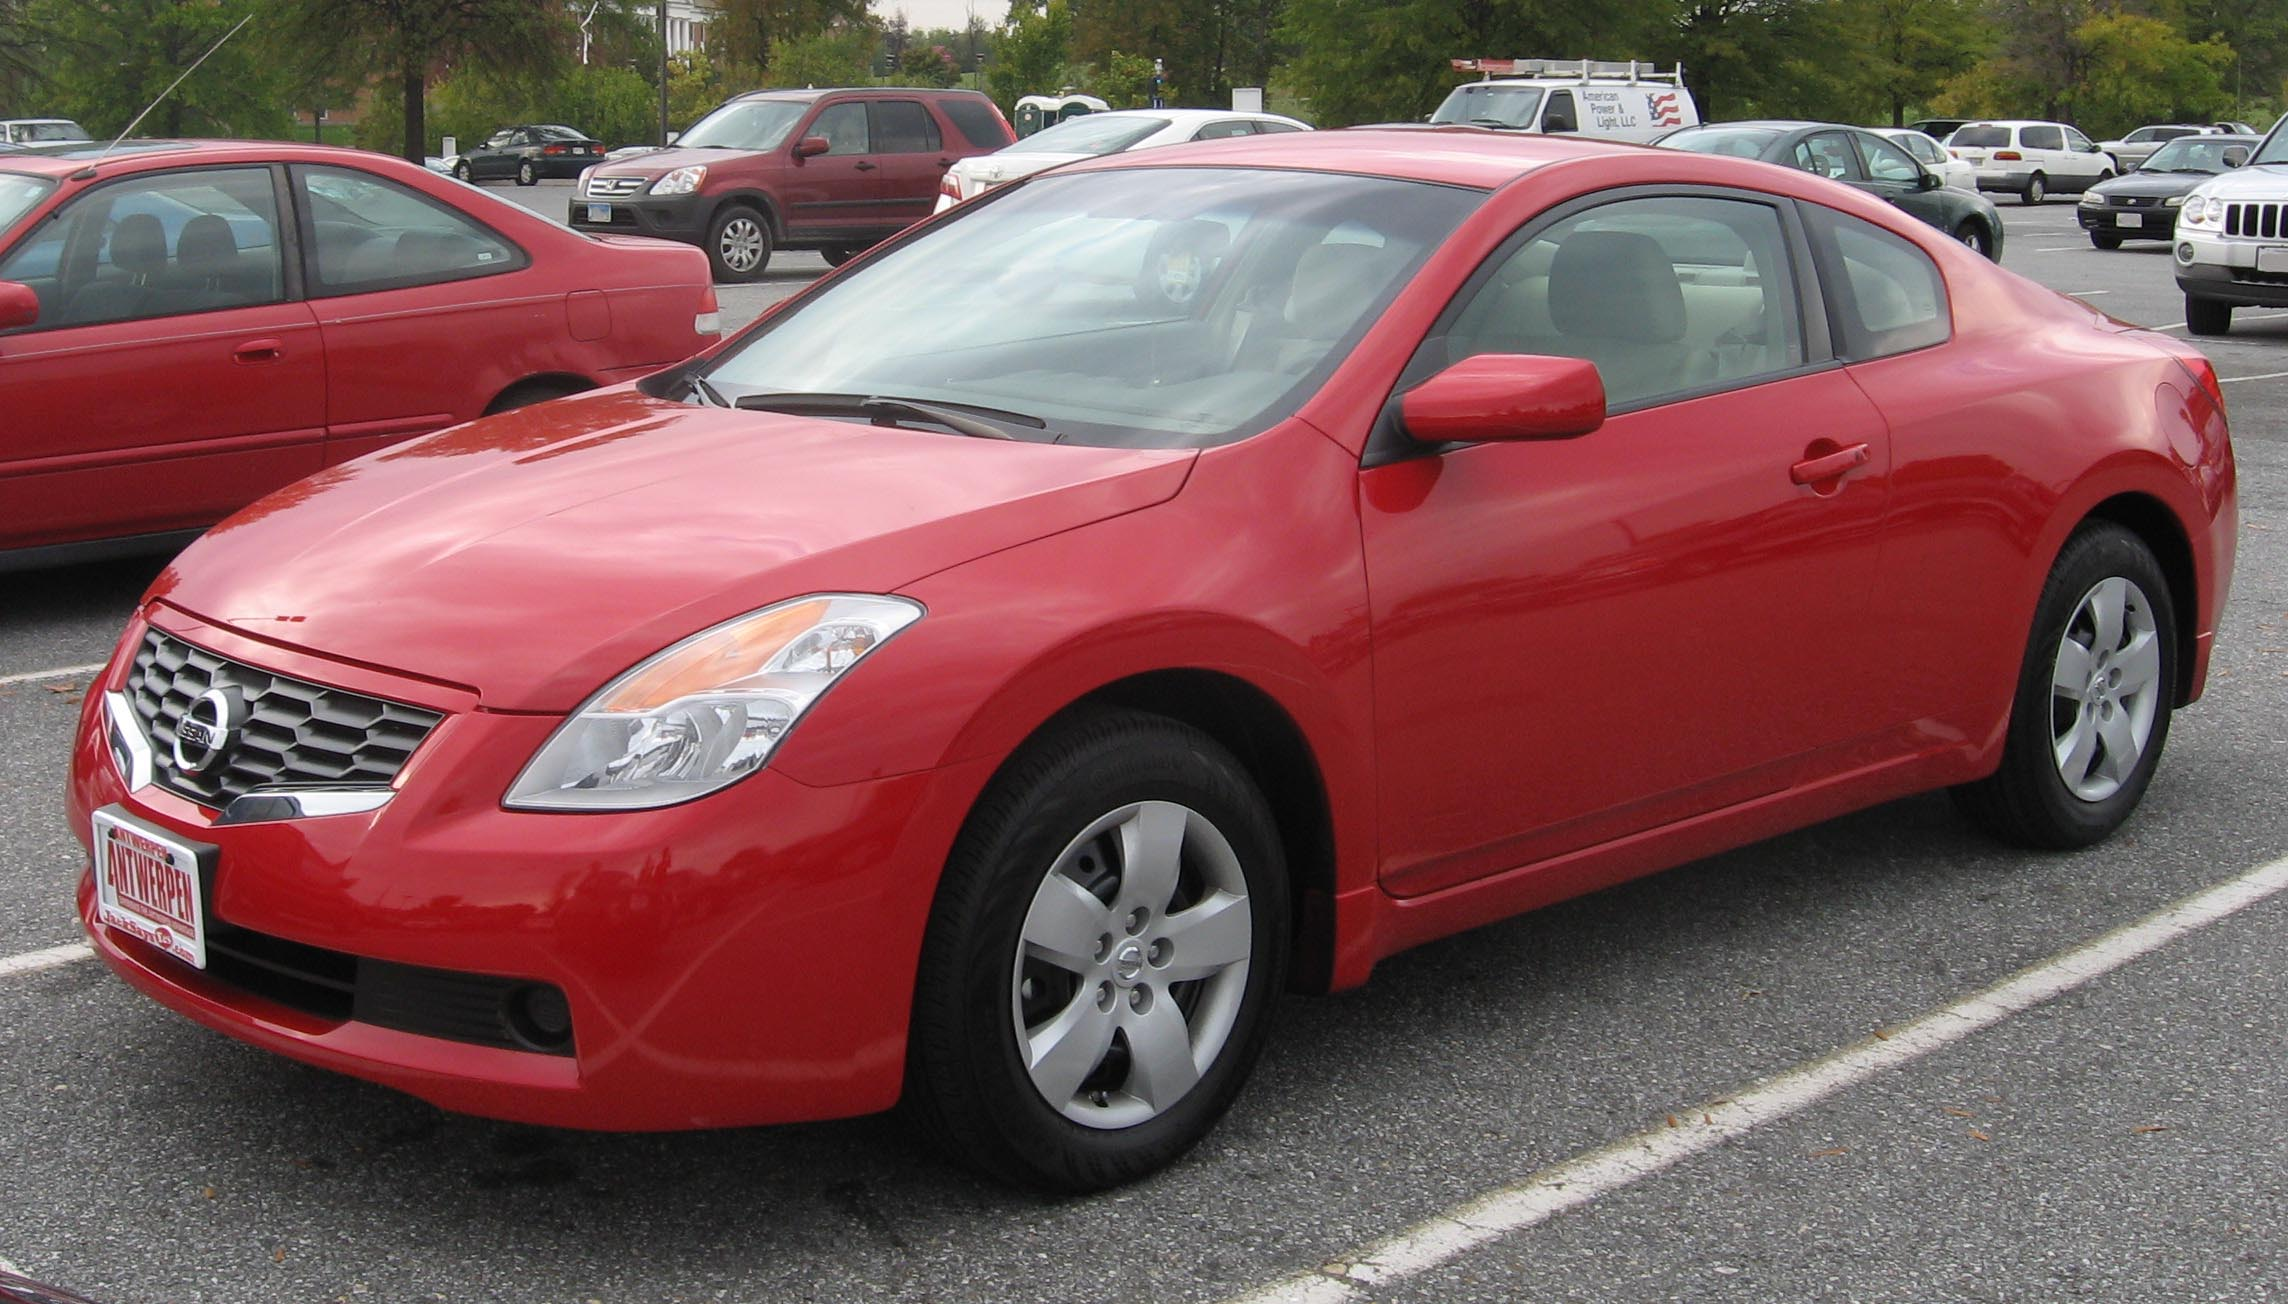 File2008NissanAltima25Scoupejpg  Wikimedia Commons